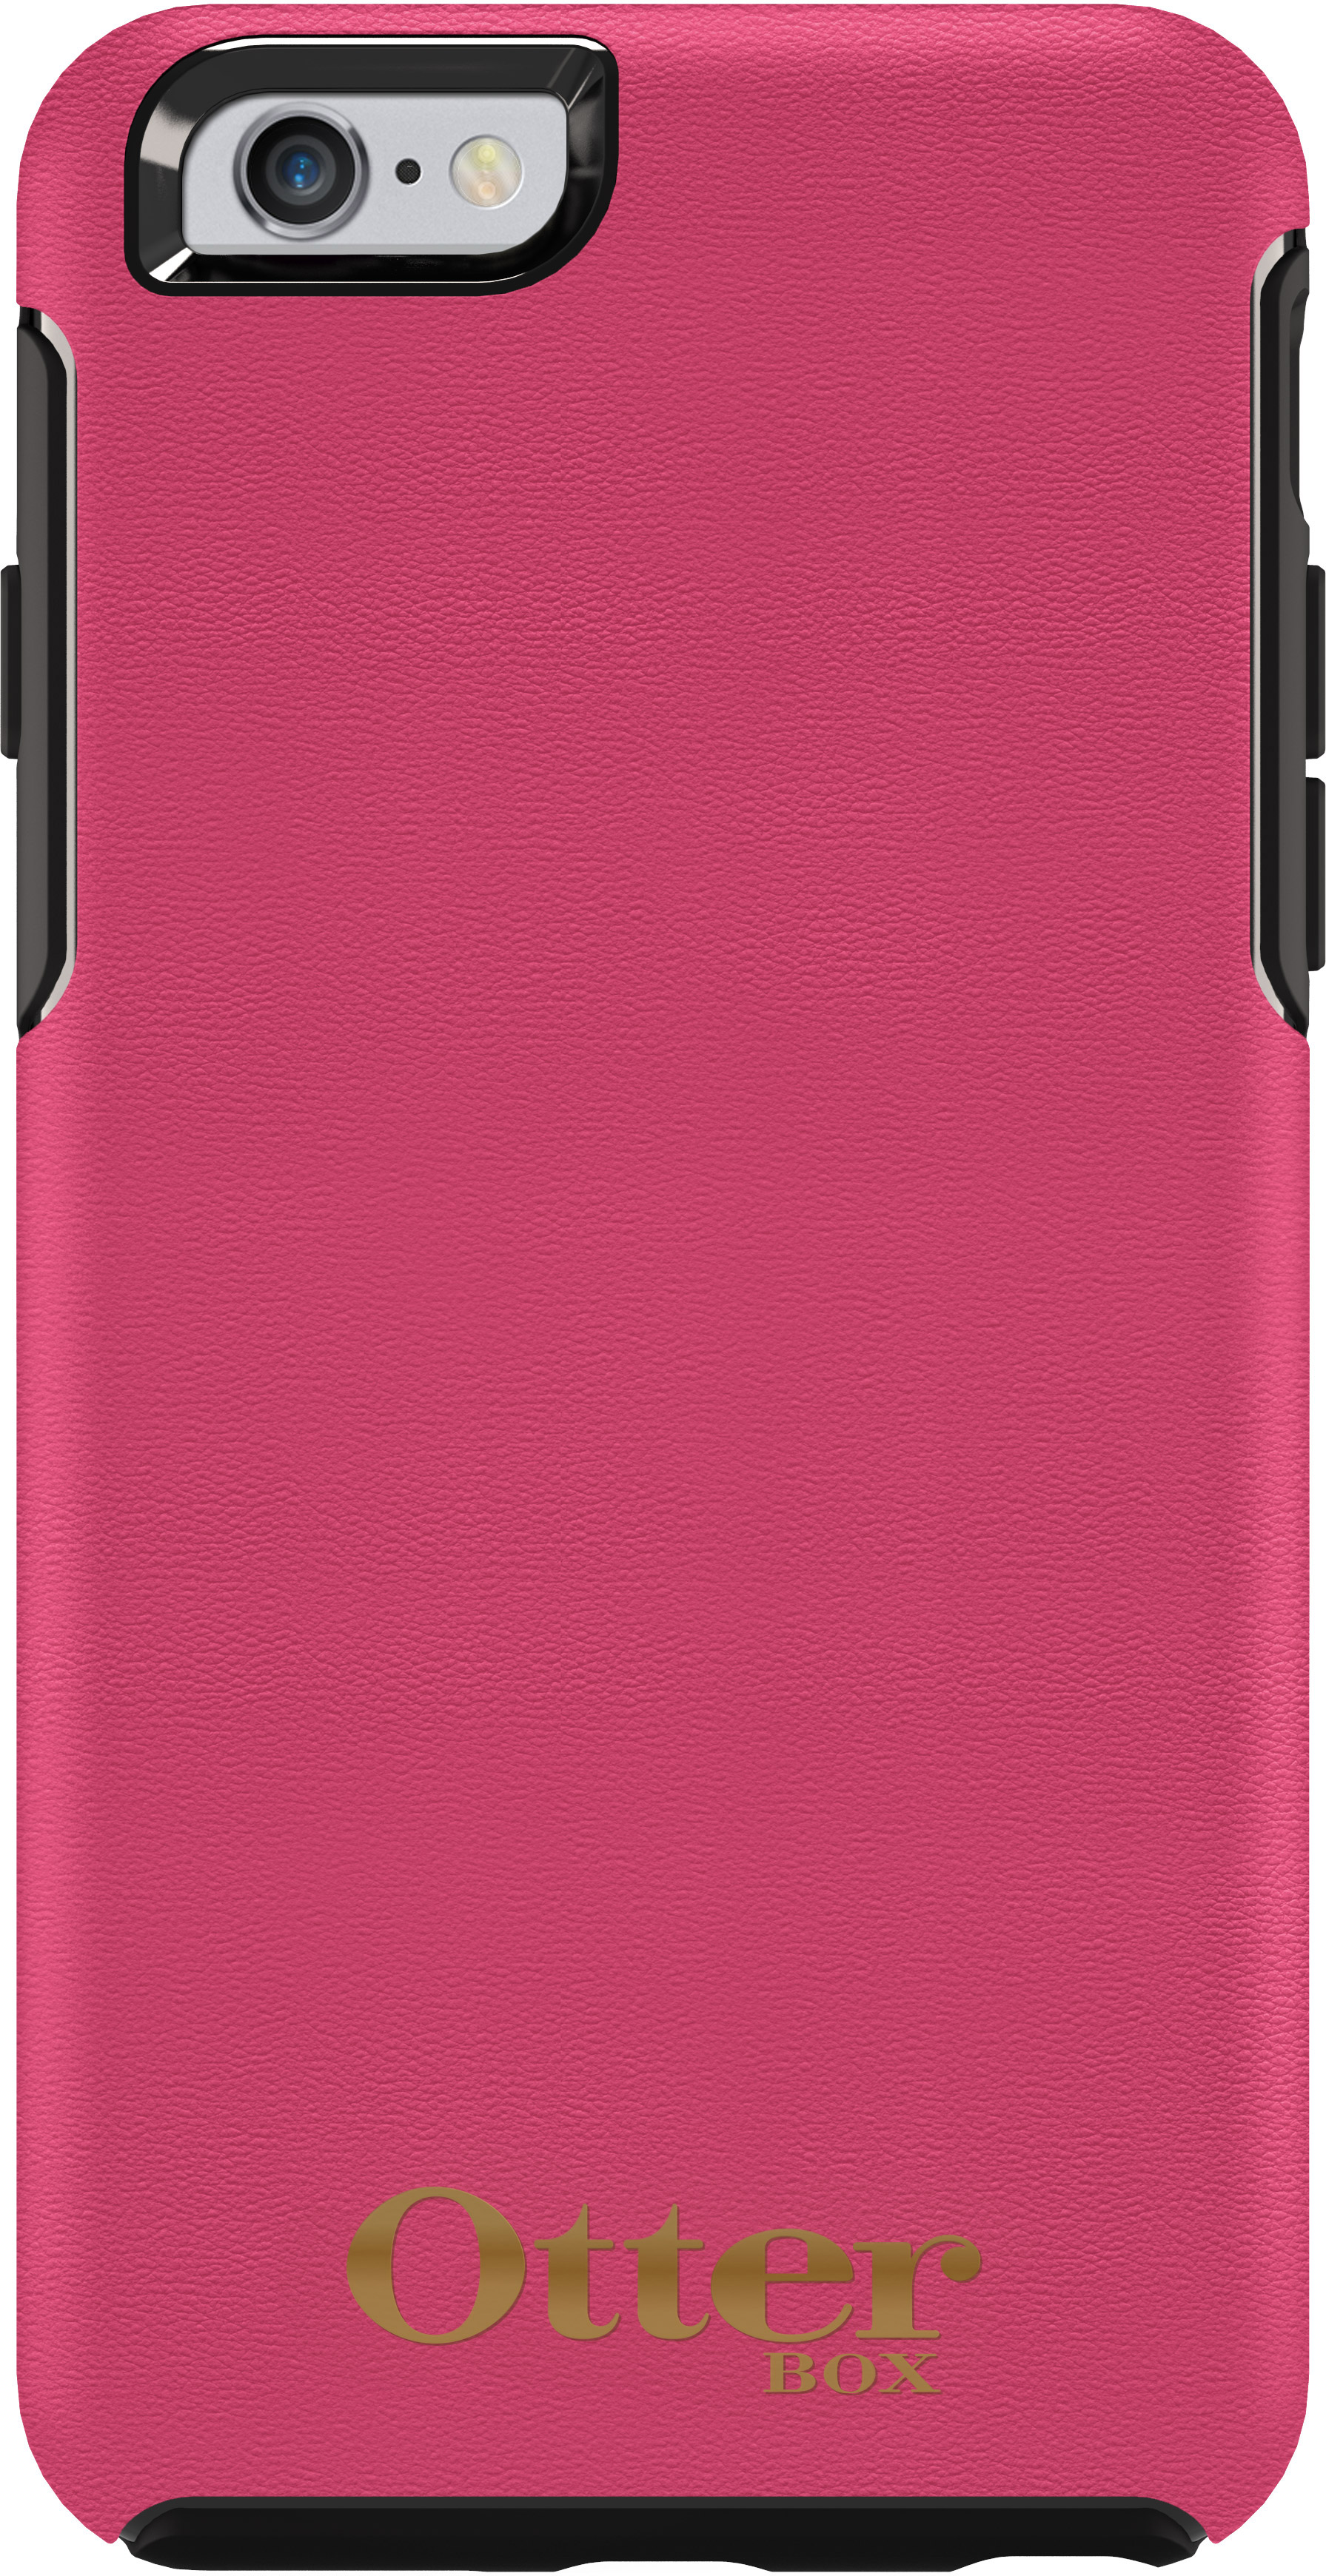 OtterBox Symmetry Series Leather Edition Cases for iPhone 6 Plus